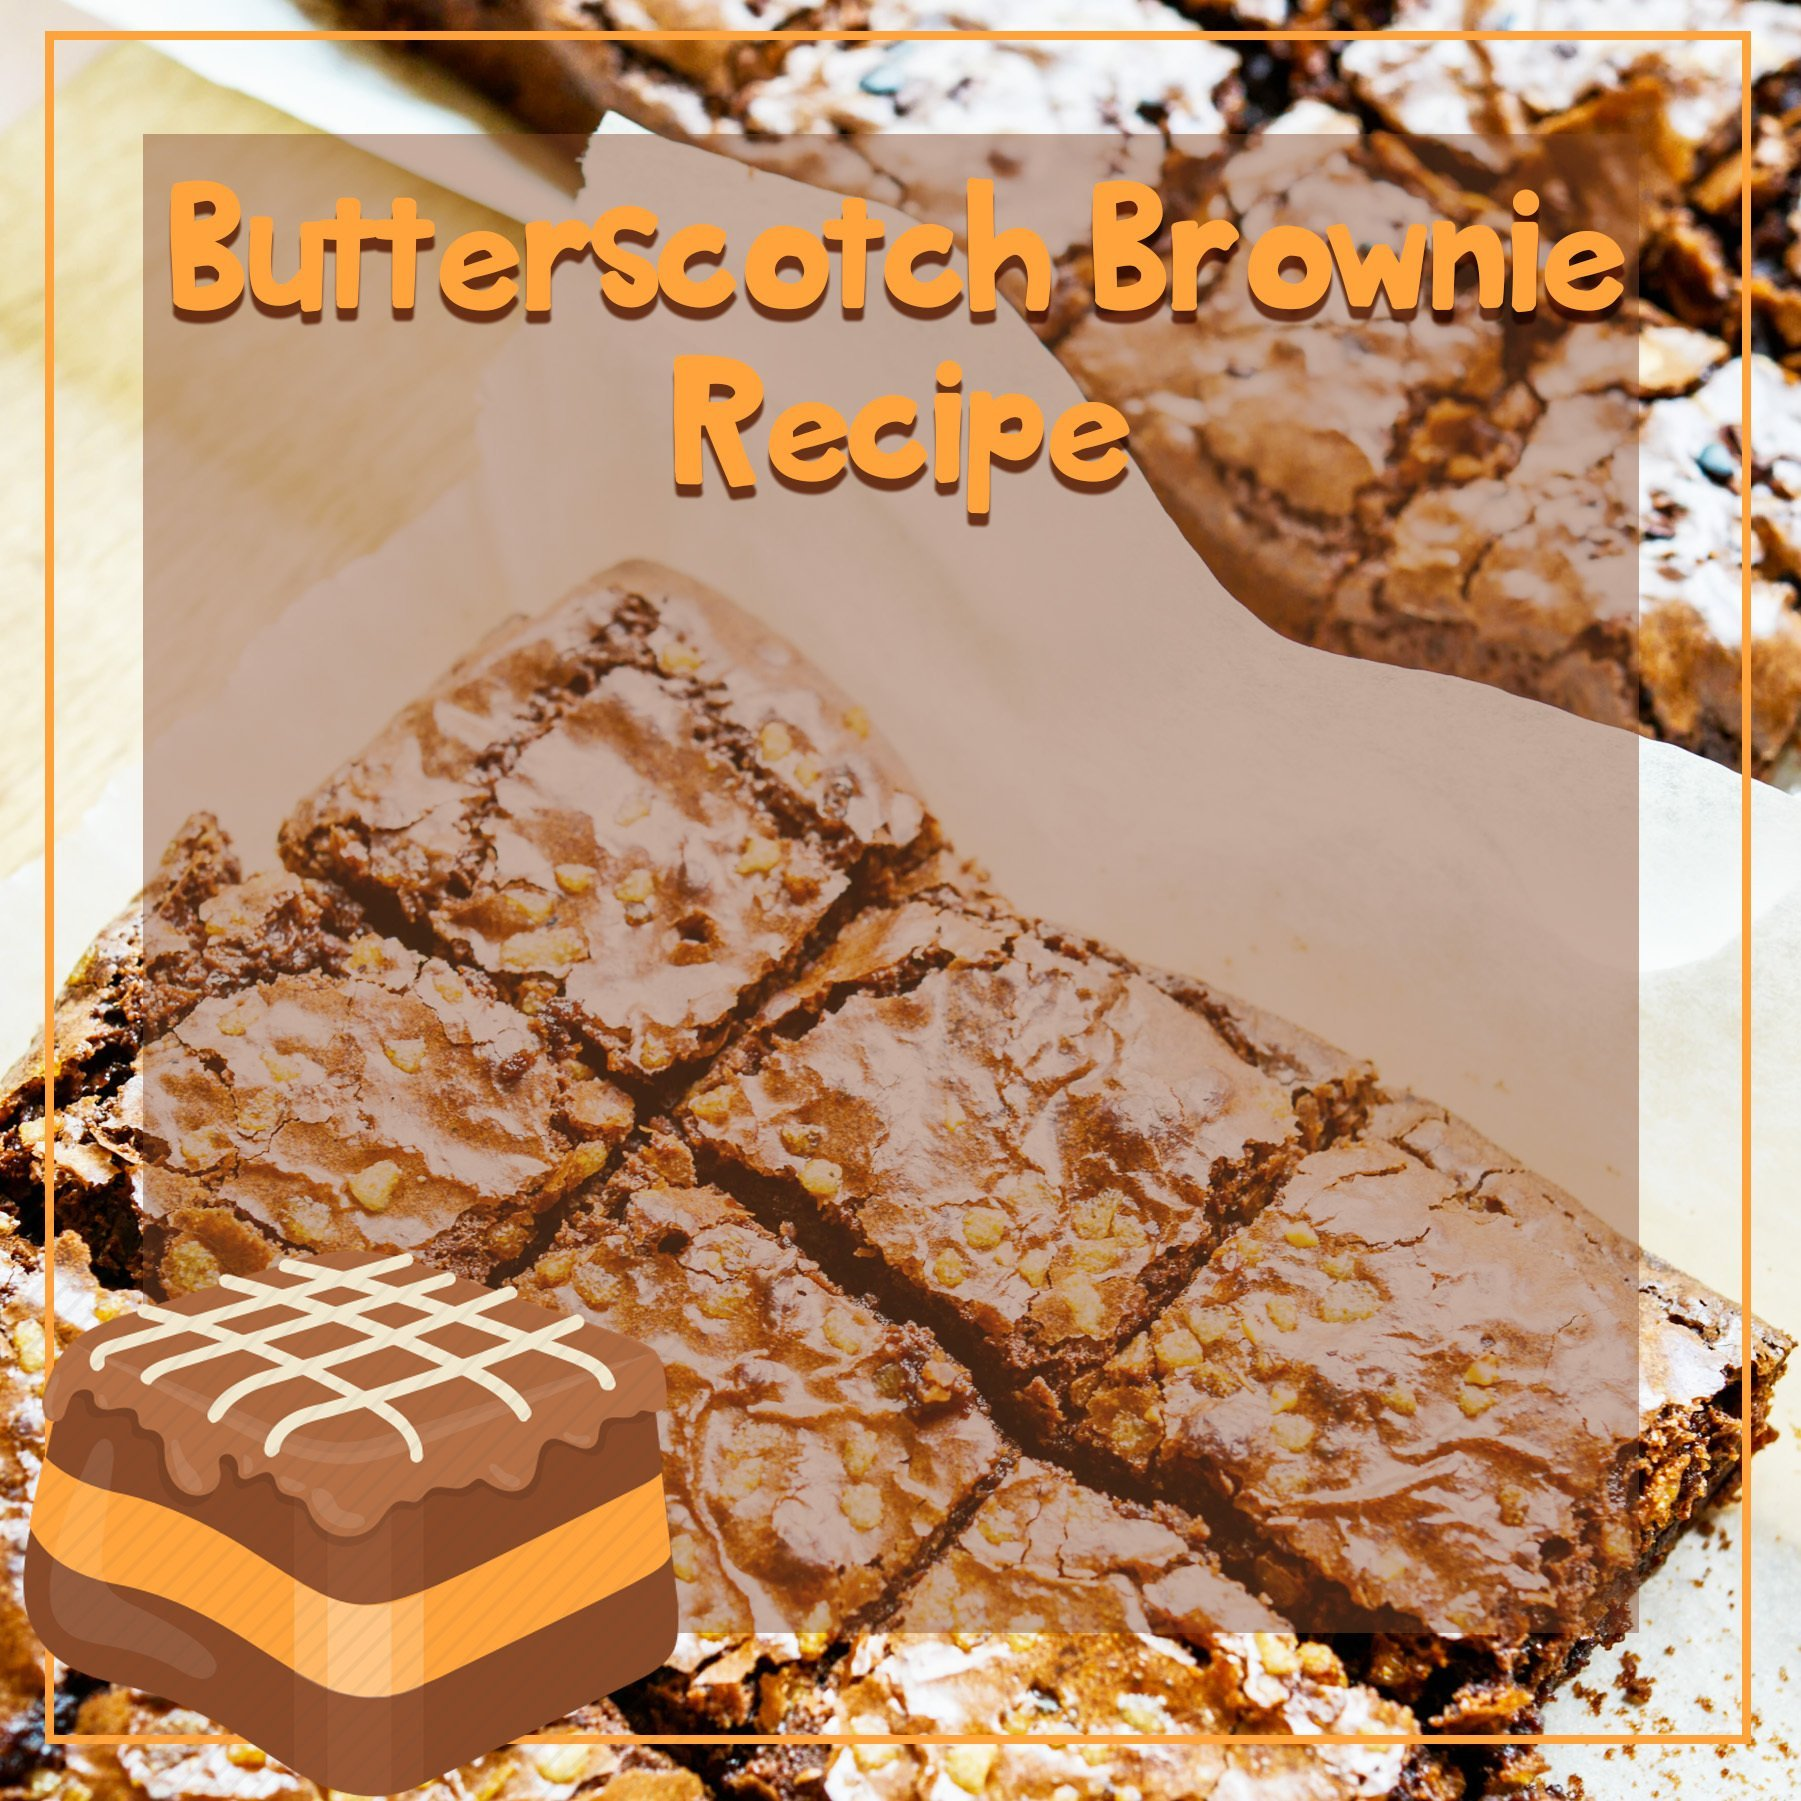 Butterscotch Brownie Day May 9th!